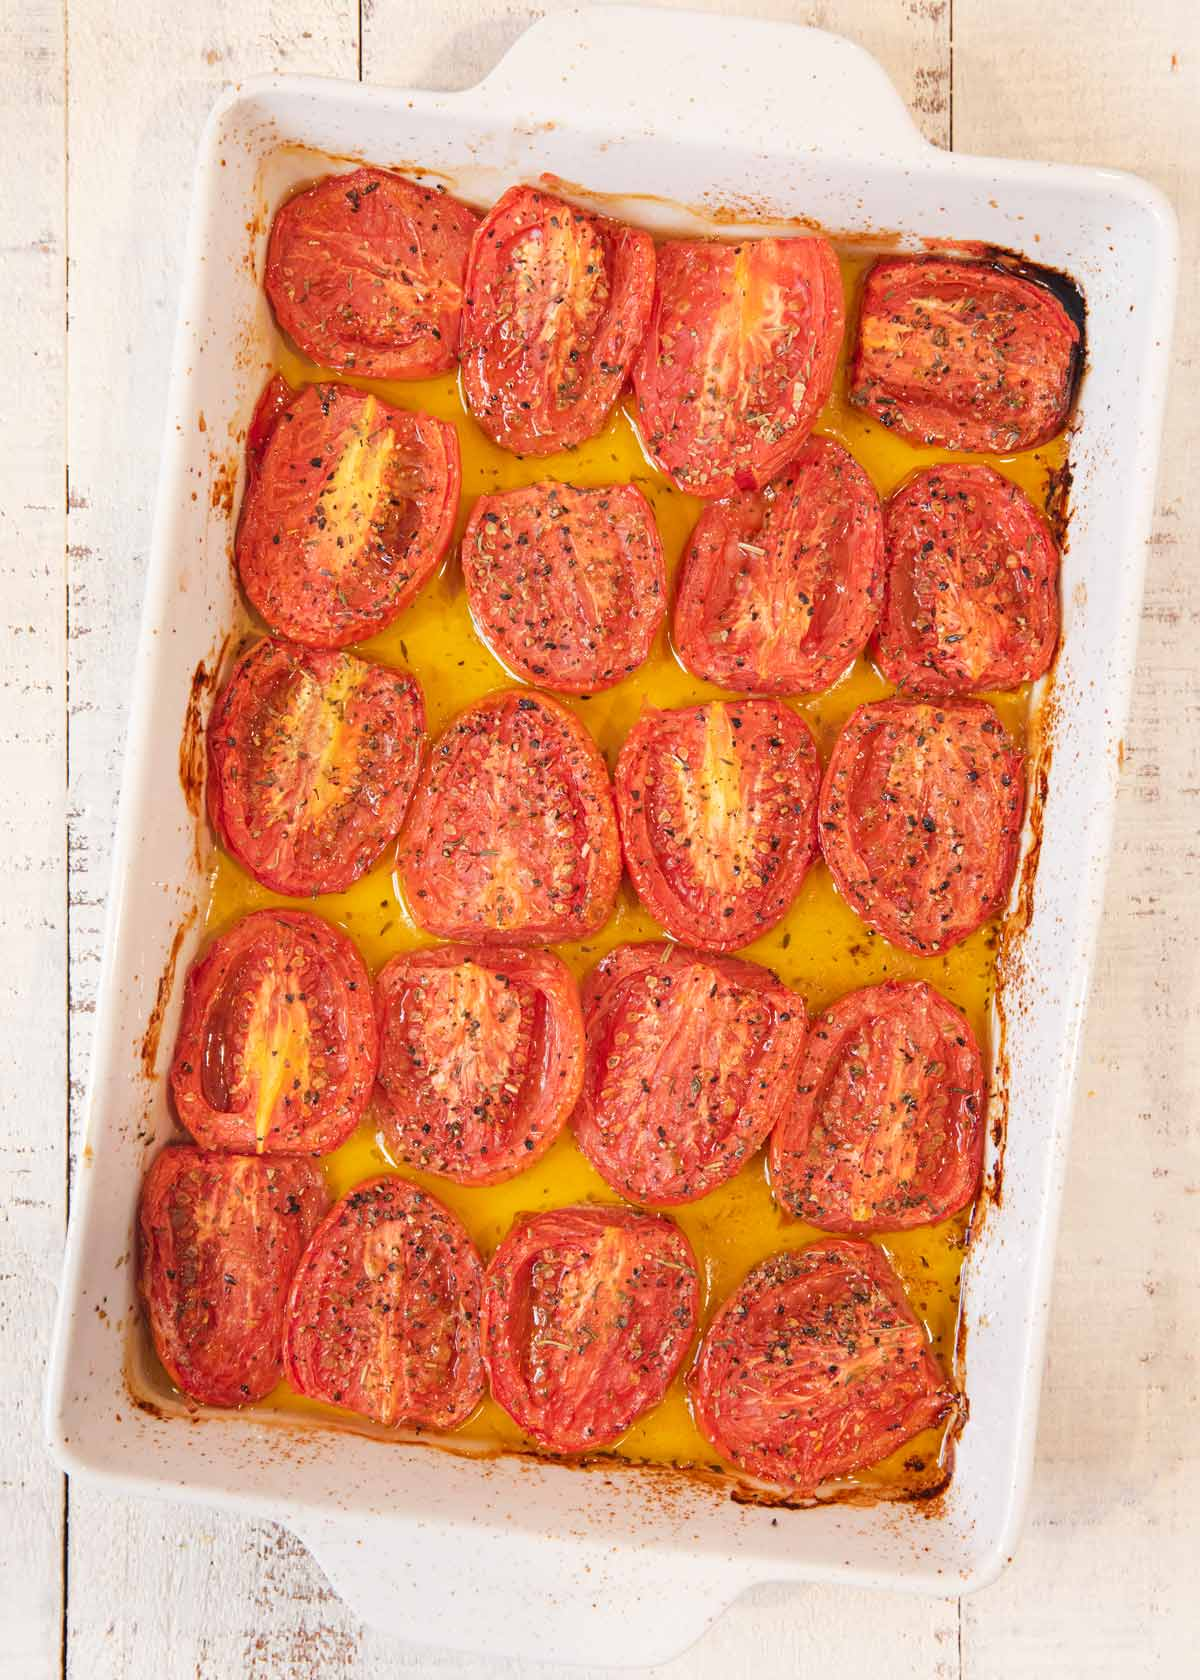 Roasted Tomatoes in baking pan